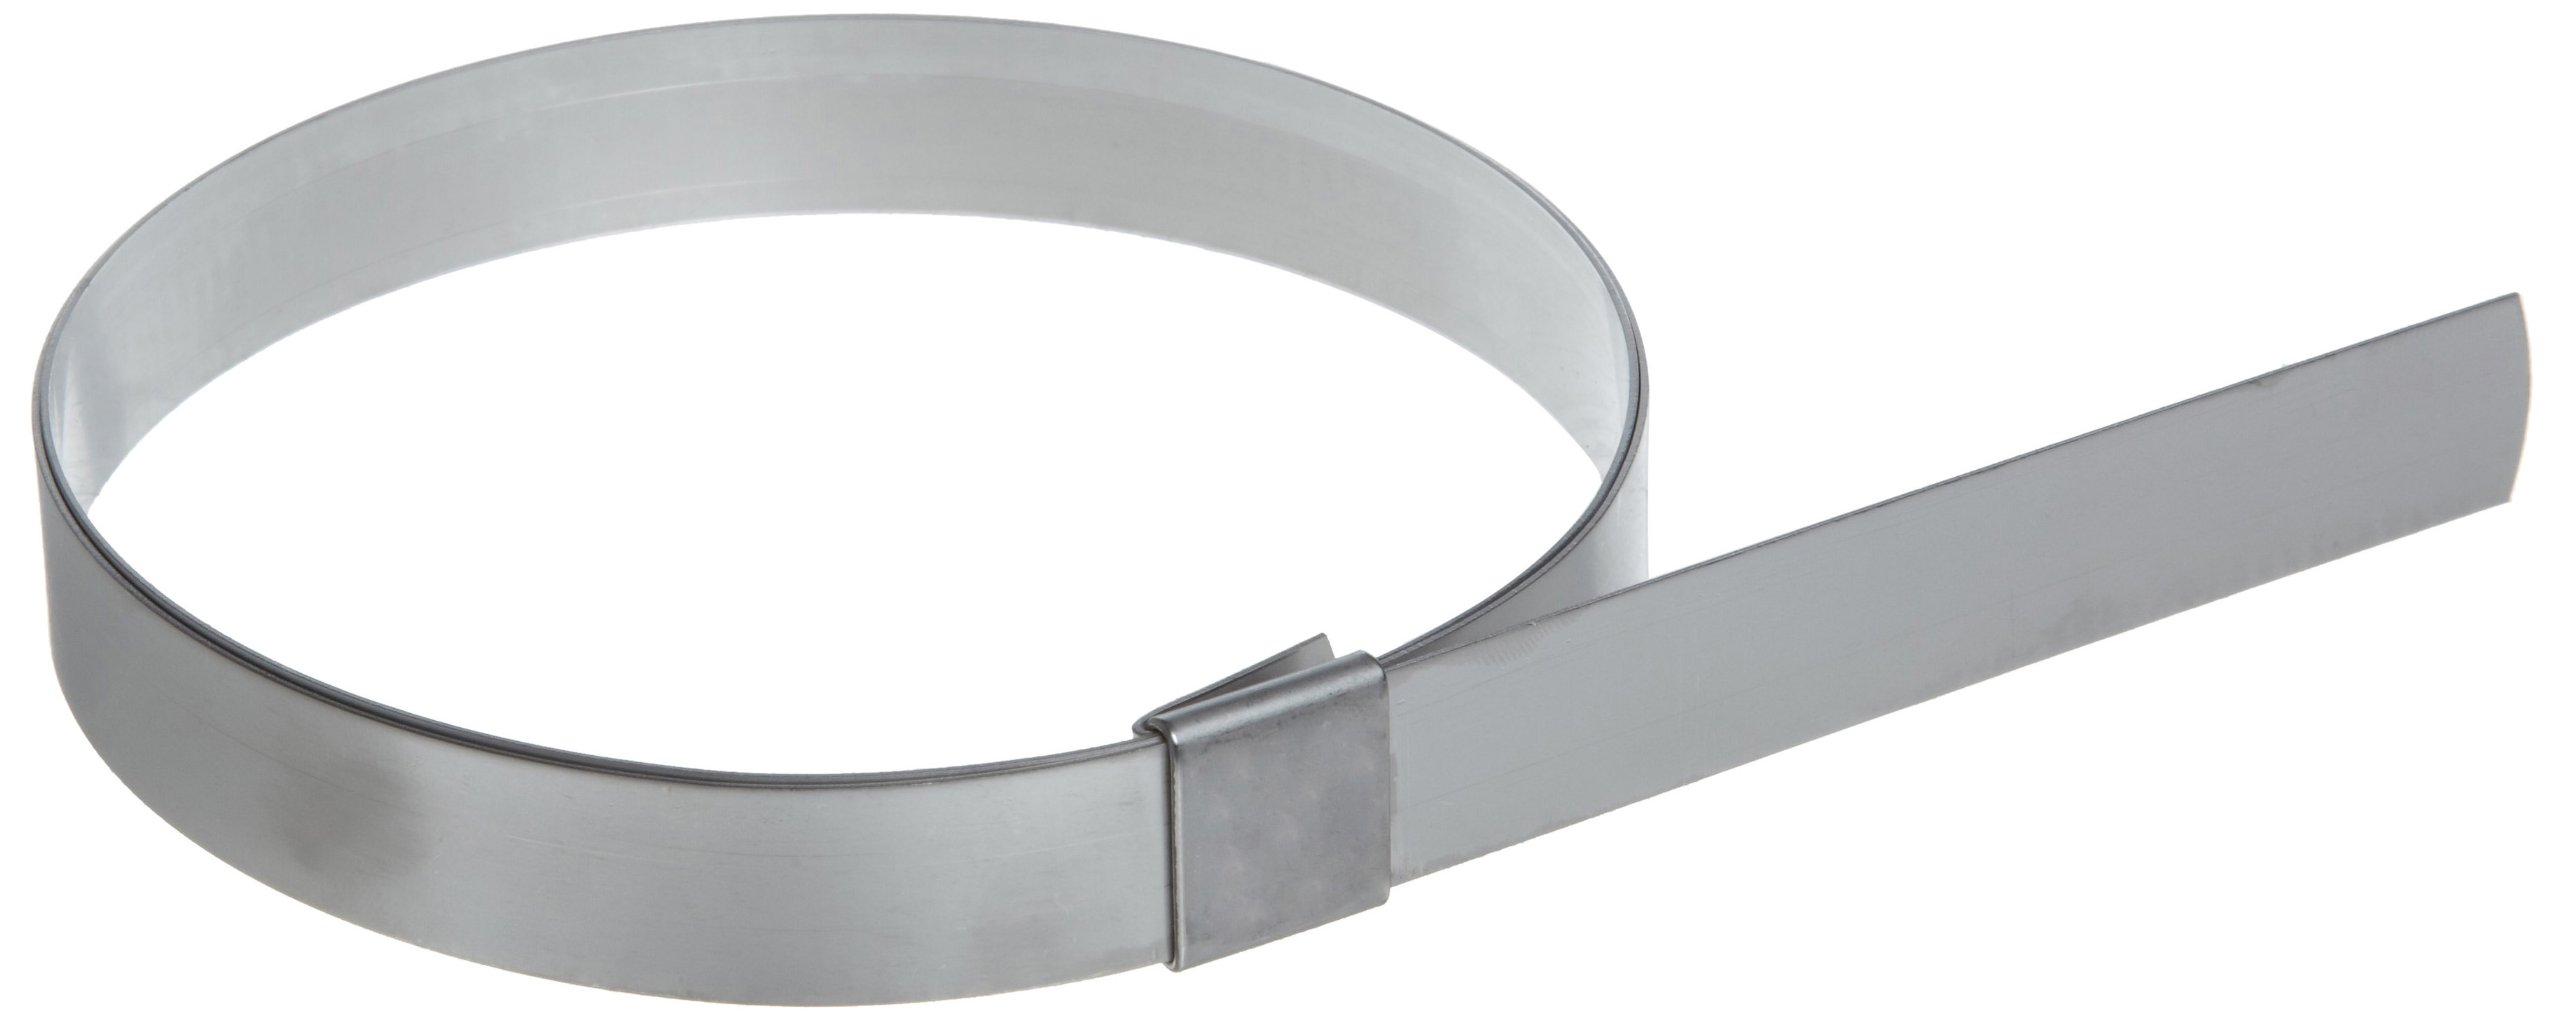 BAND-IT CP311S 3/8'' Wide x 0.025'' Thick 1-3/8'' Diameter, 201 Stainless Steel Center Punch Clamp (100 Per Box)